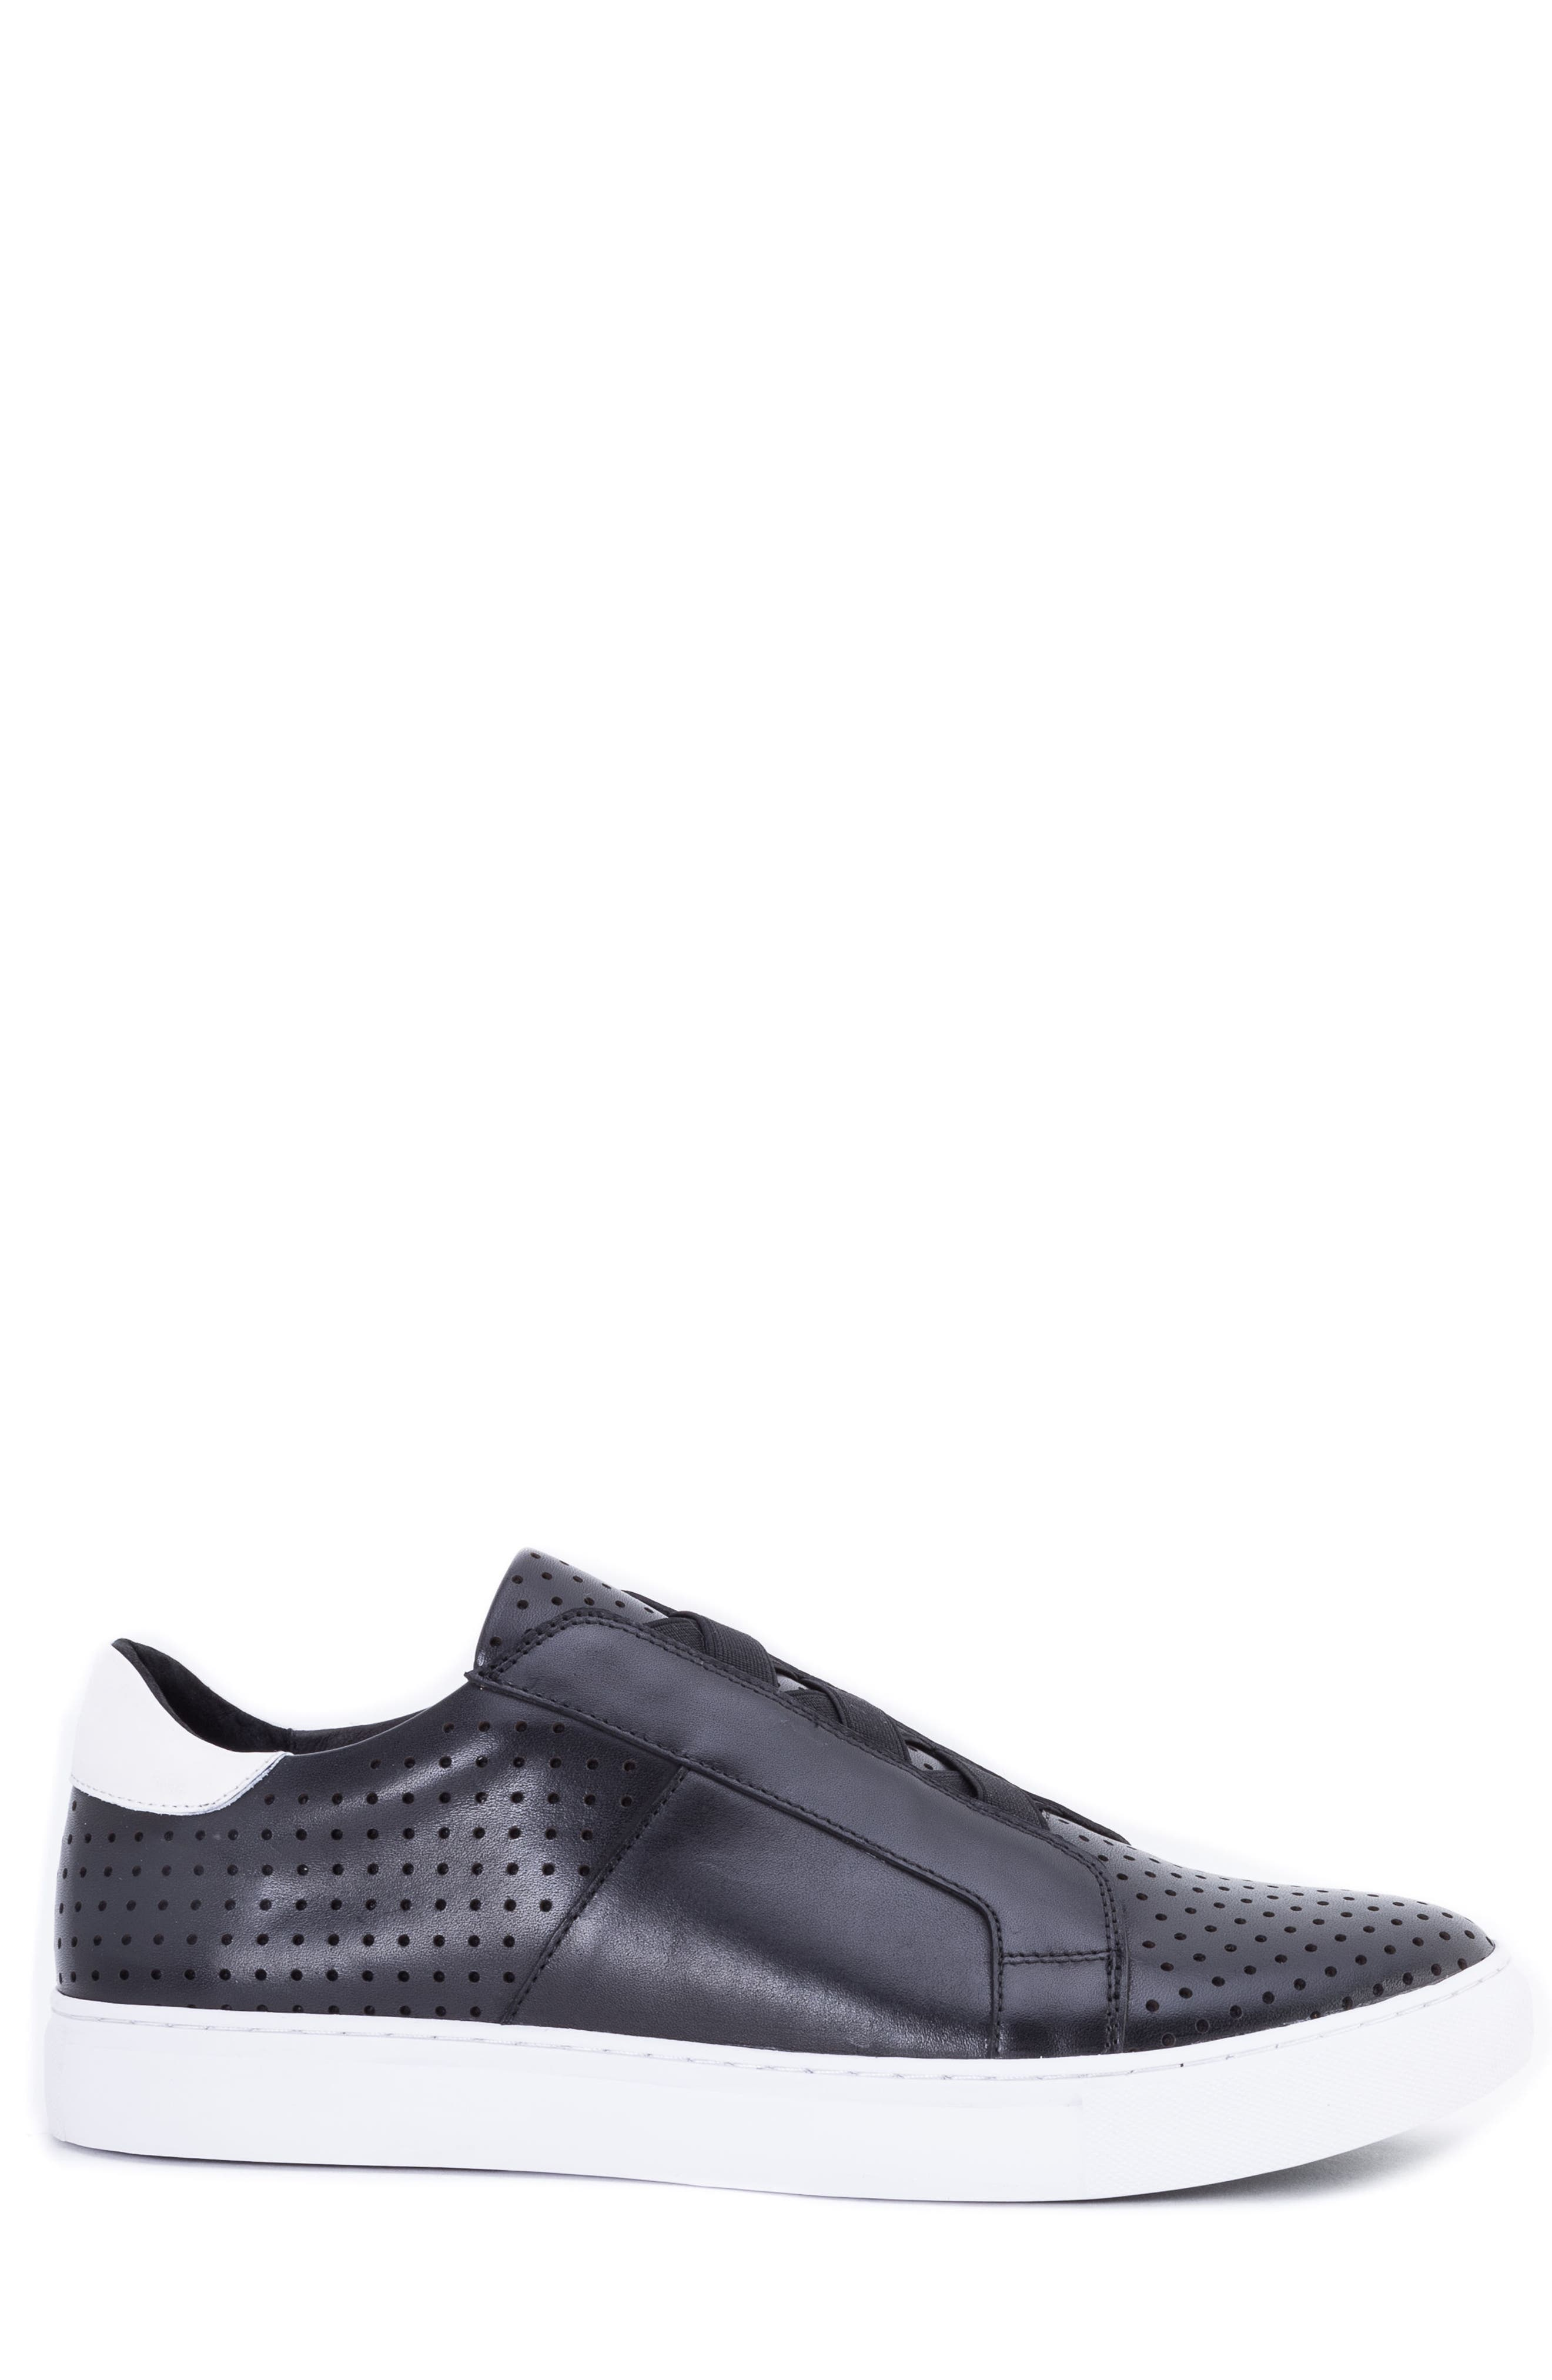 Rowley Perforated Laceless Sneaker,                             Alternate thumbnail 3, color,                             BLACK LEATHER